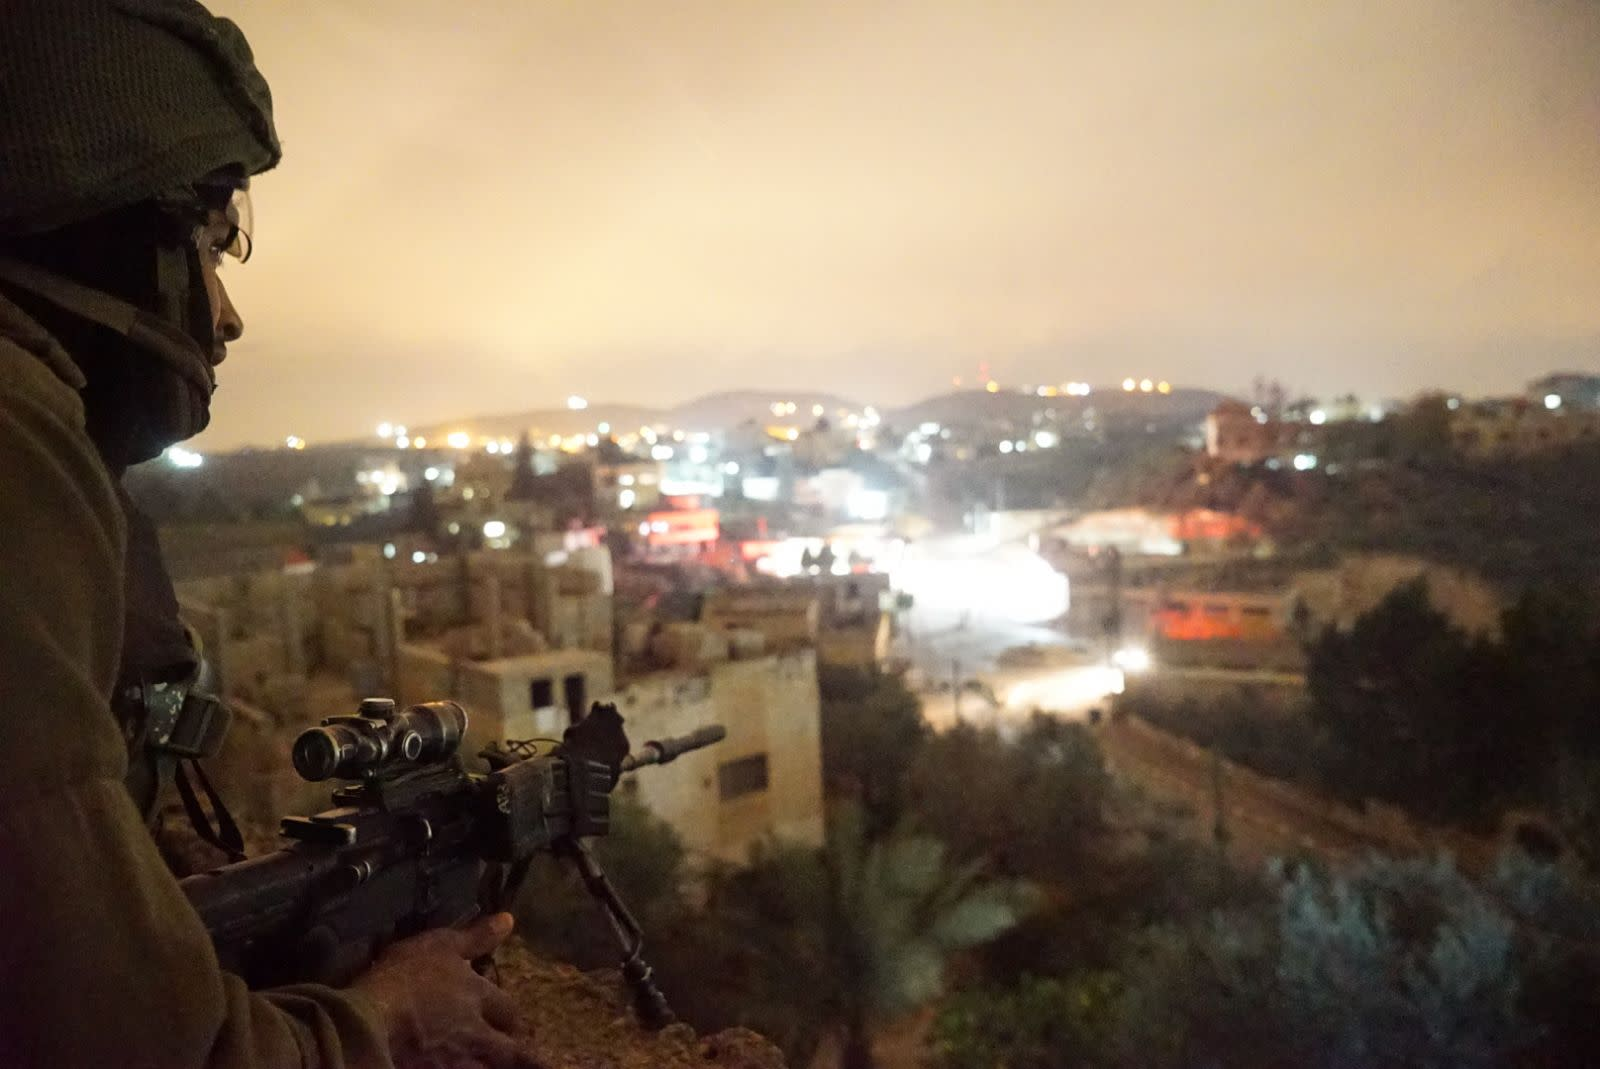 An IDF sniper during the raid on the West Bank village of Al-Yumun. (IDF SPOKESPERSON'S UNIT)